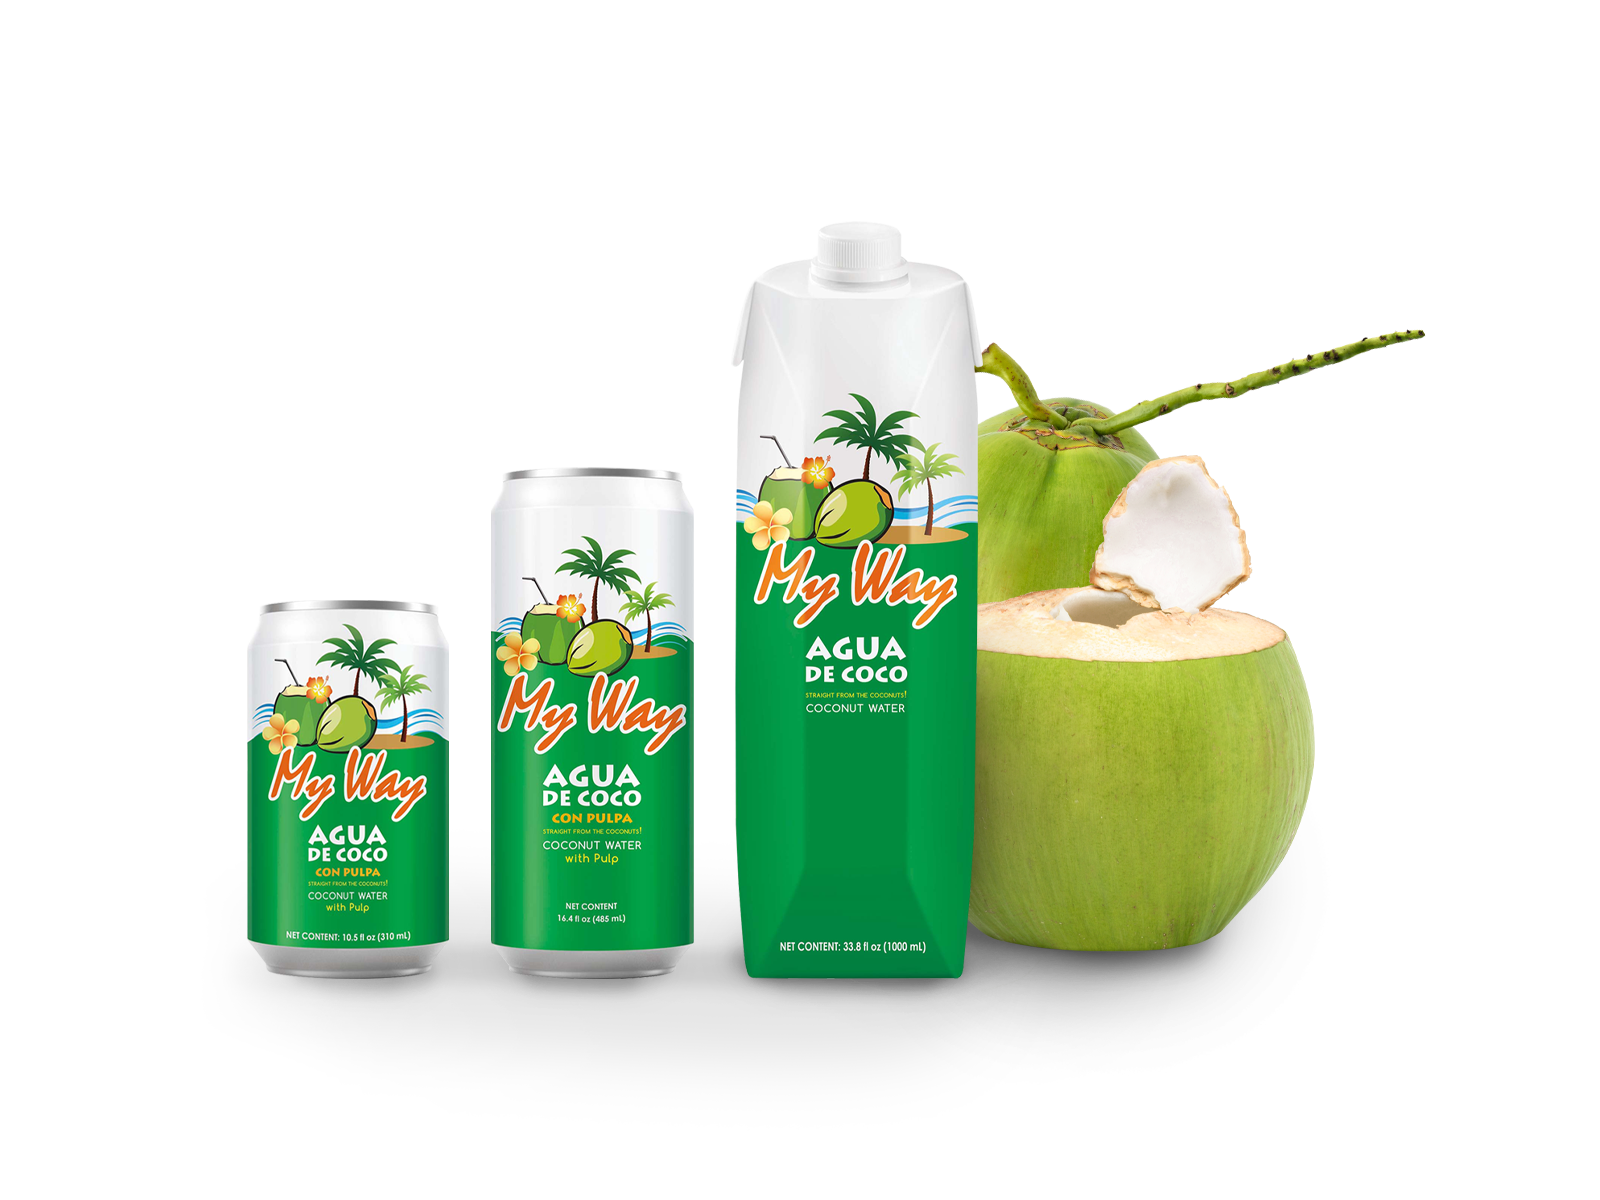 My way Coconut water